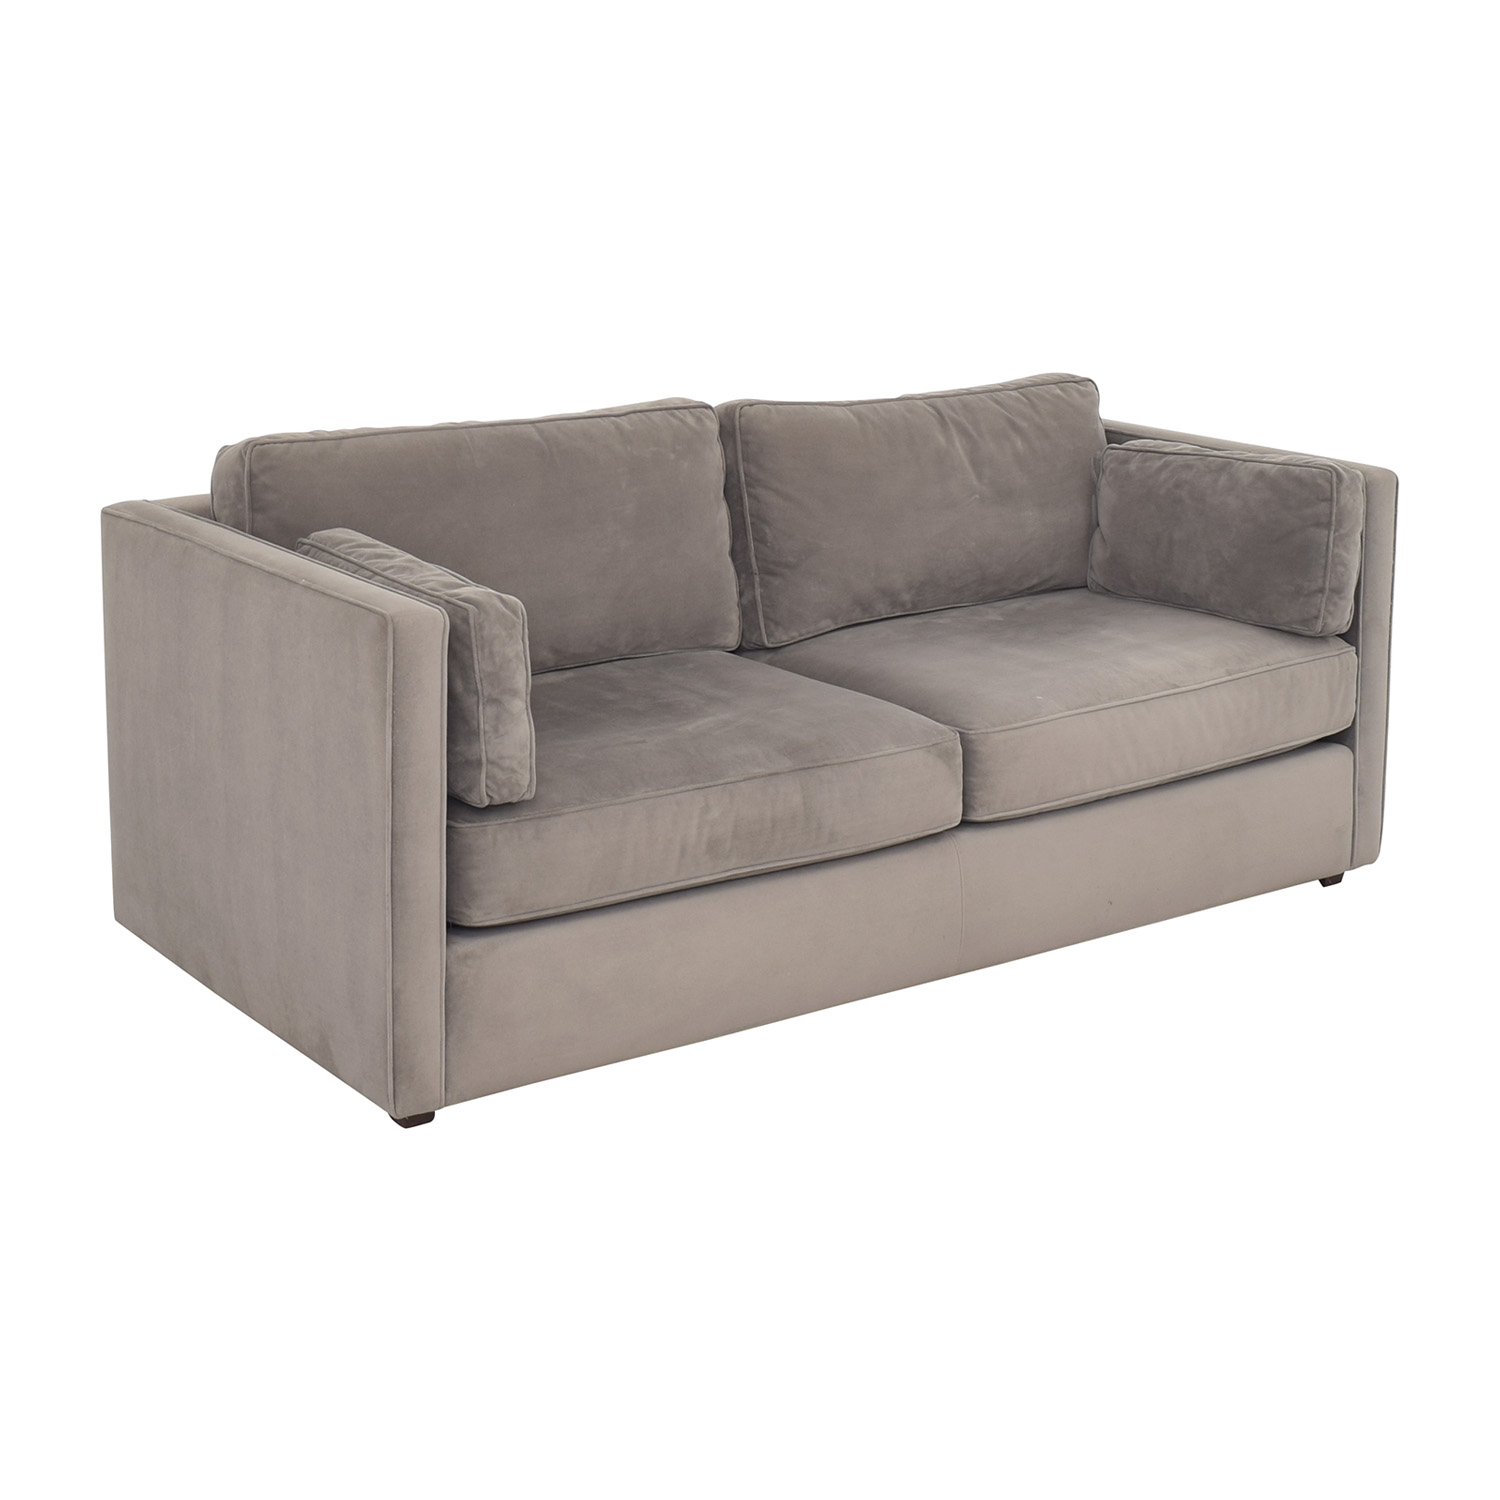 buy Room & Board Room & Board Watson Two Cushion Sofa online